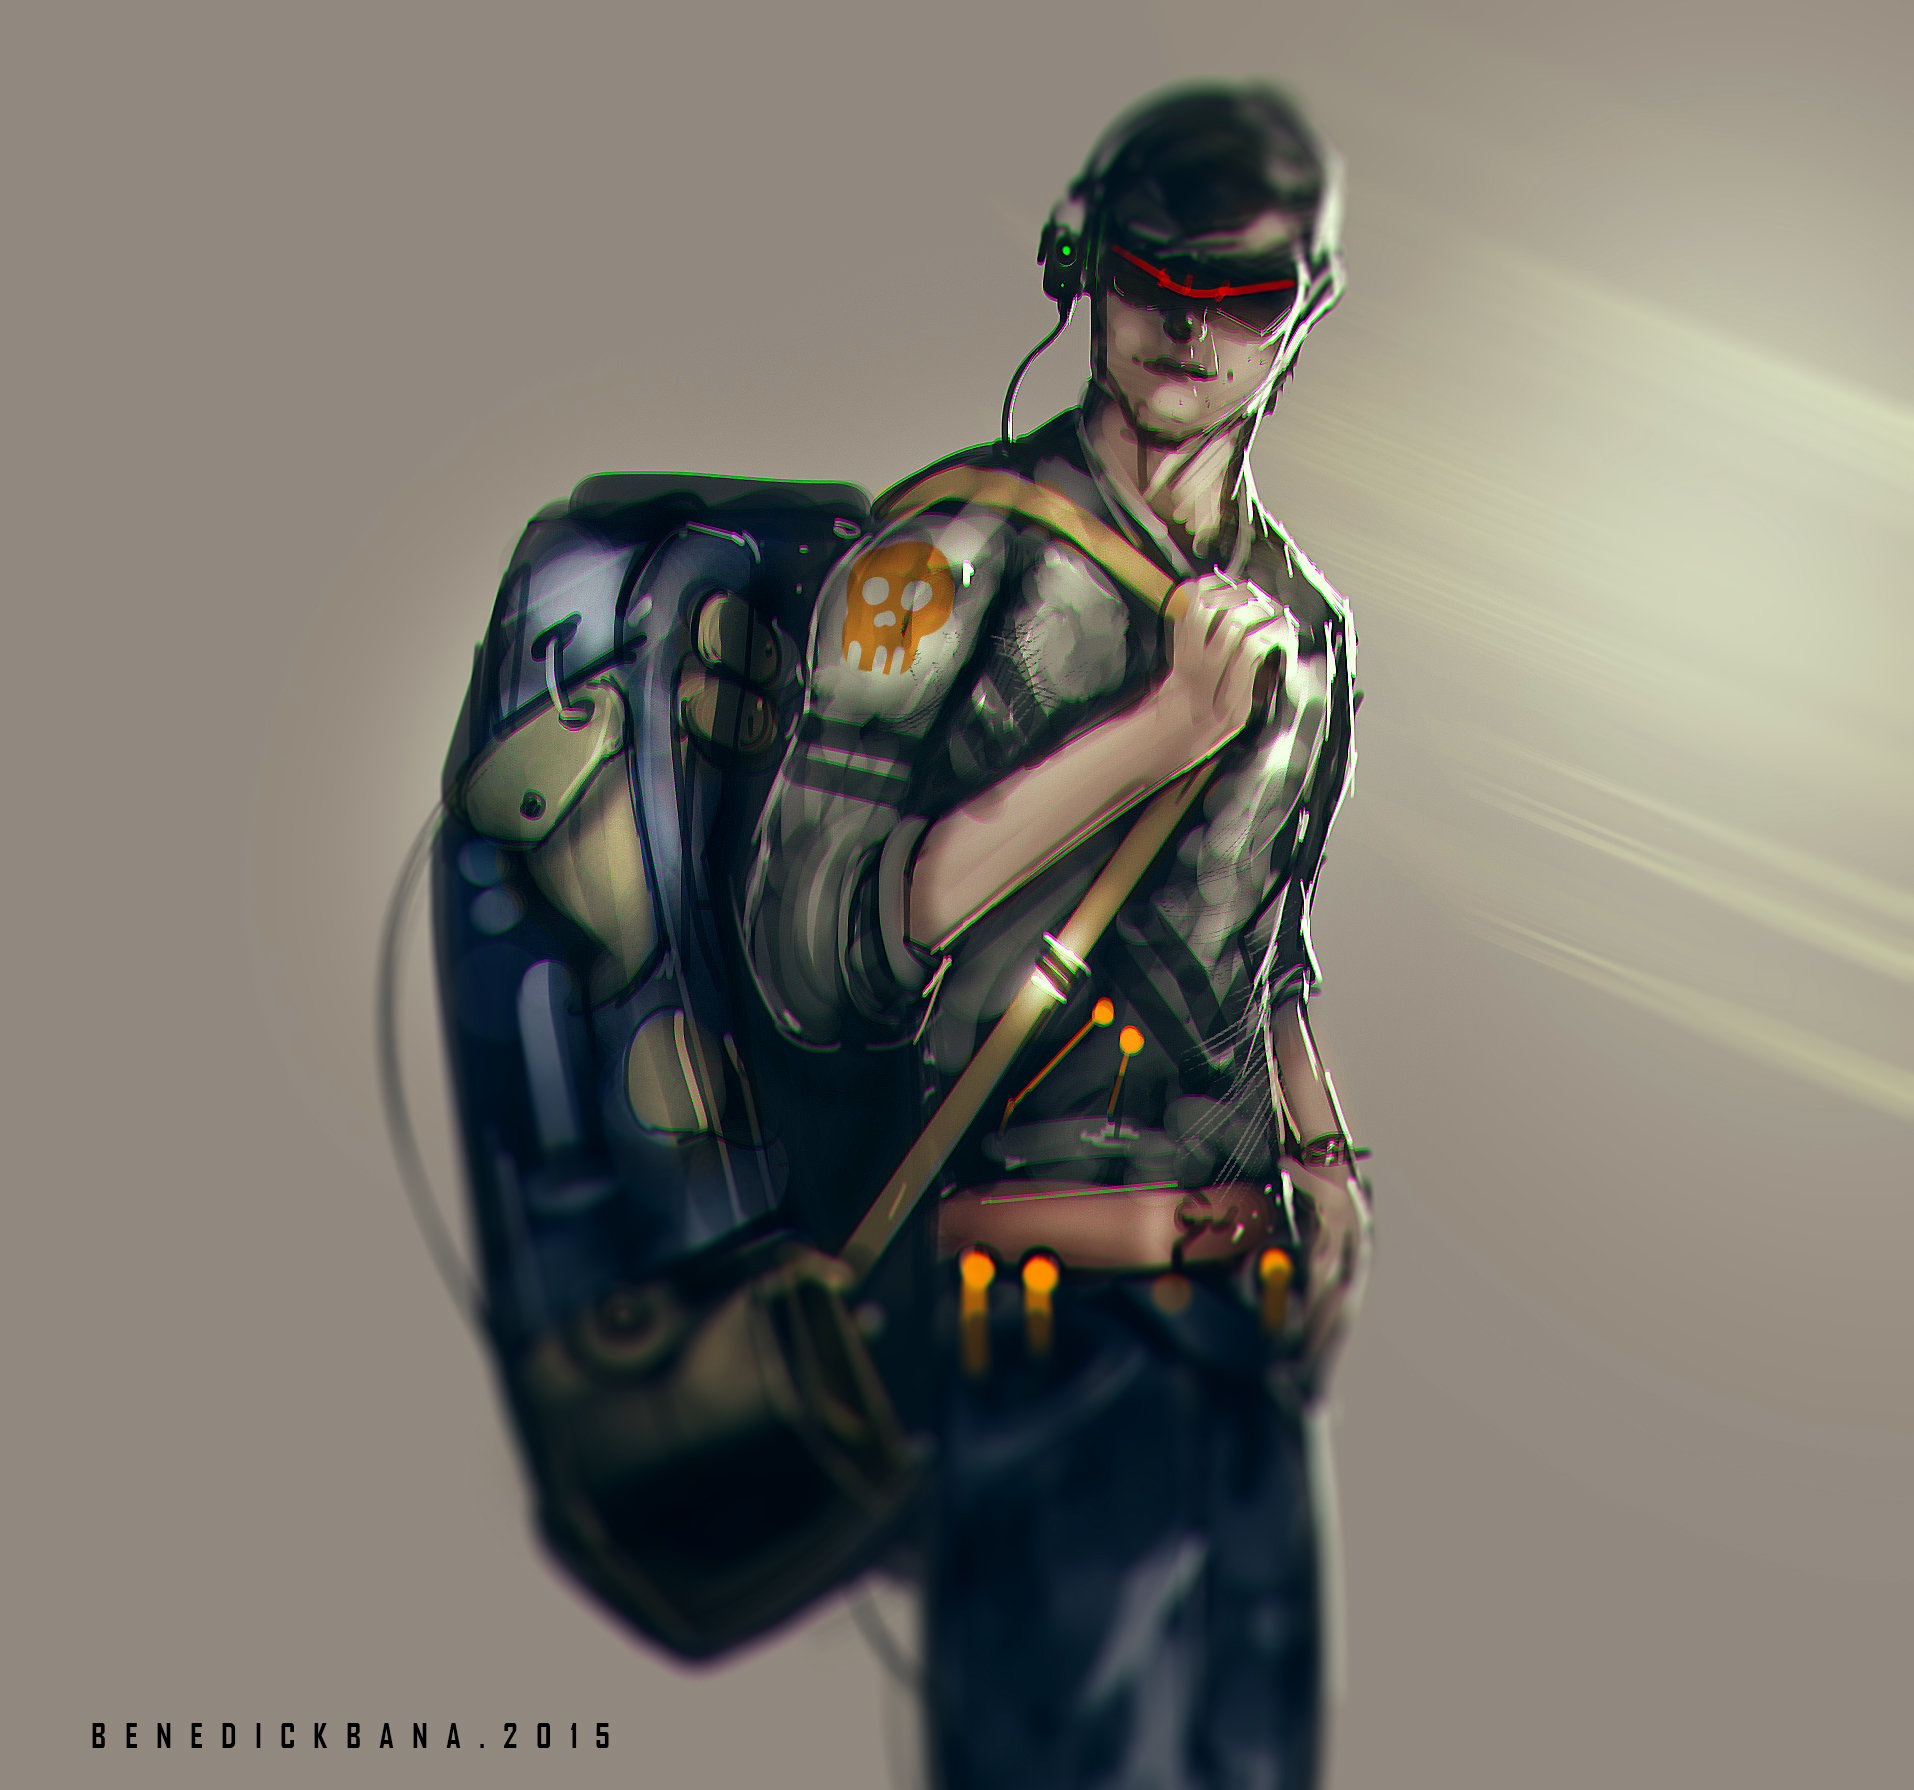 Benedick bana backpacker